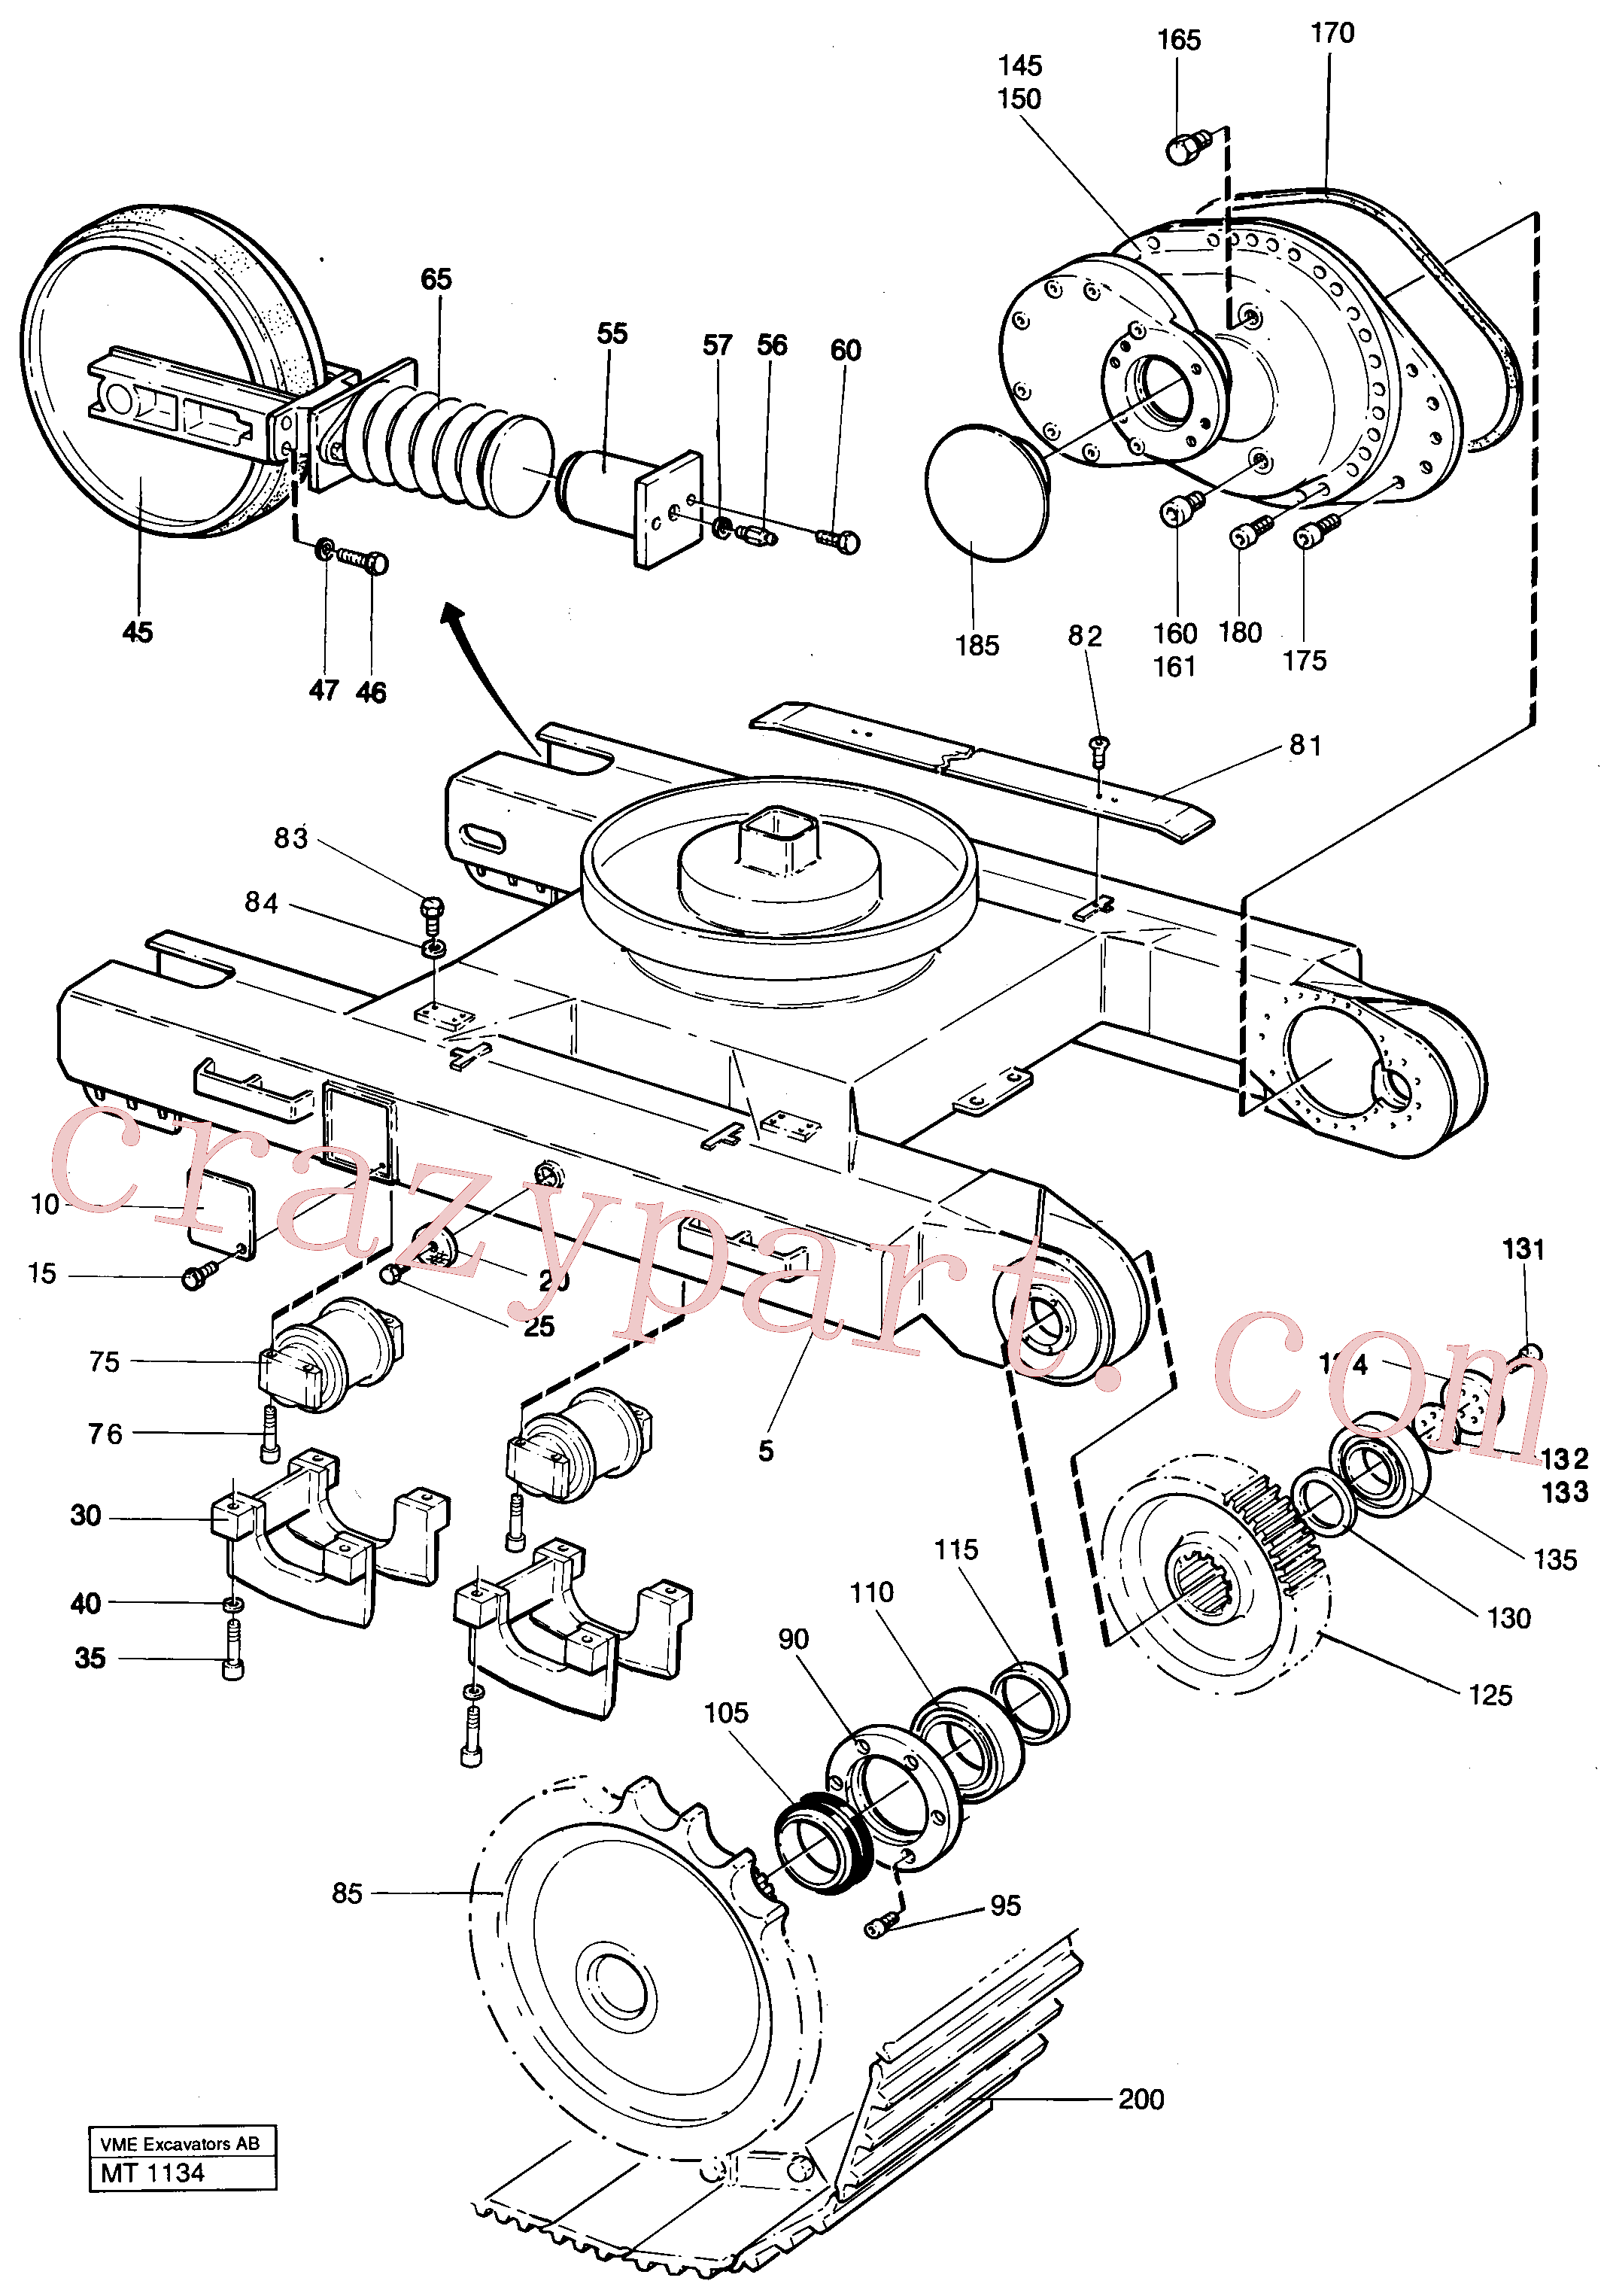 VOE1506370 for Volvo Undercarriage Ec 230 Undercarriage Ec 229(MT1134 assembly)